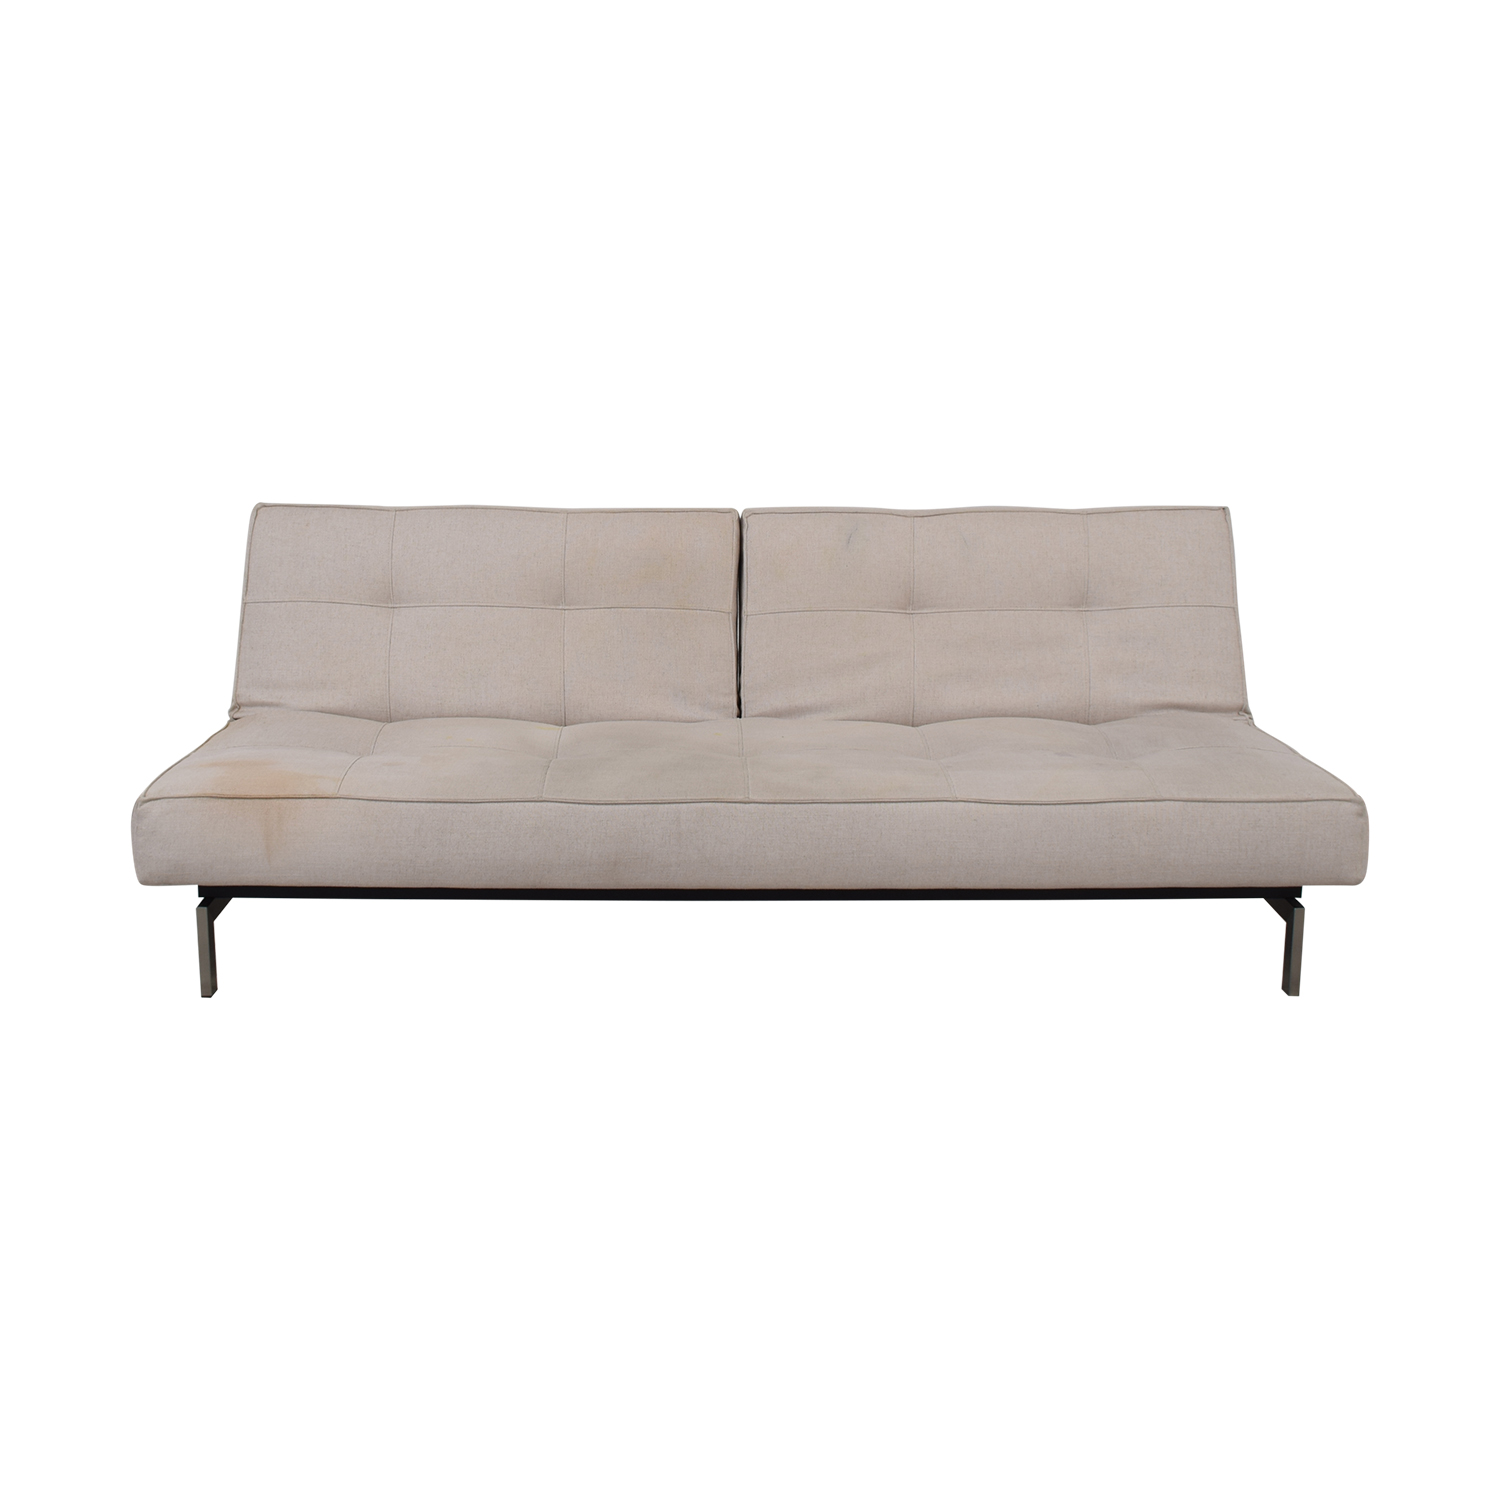 ABC Carpet & Home ABC Carpet & Home Cobble Hill Sofa on sale